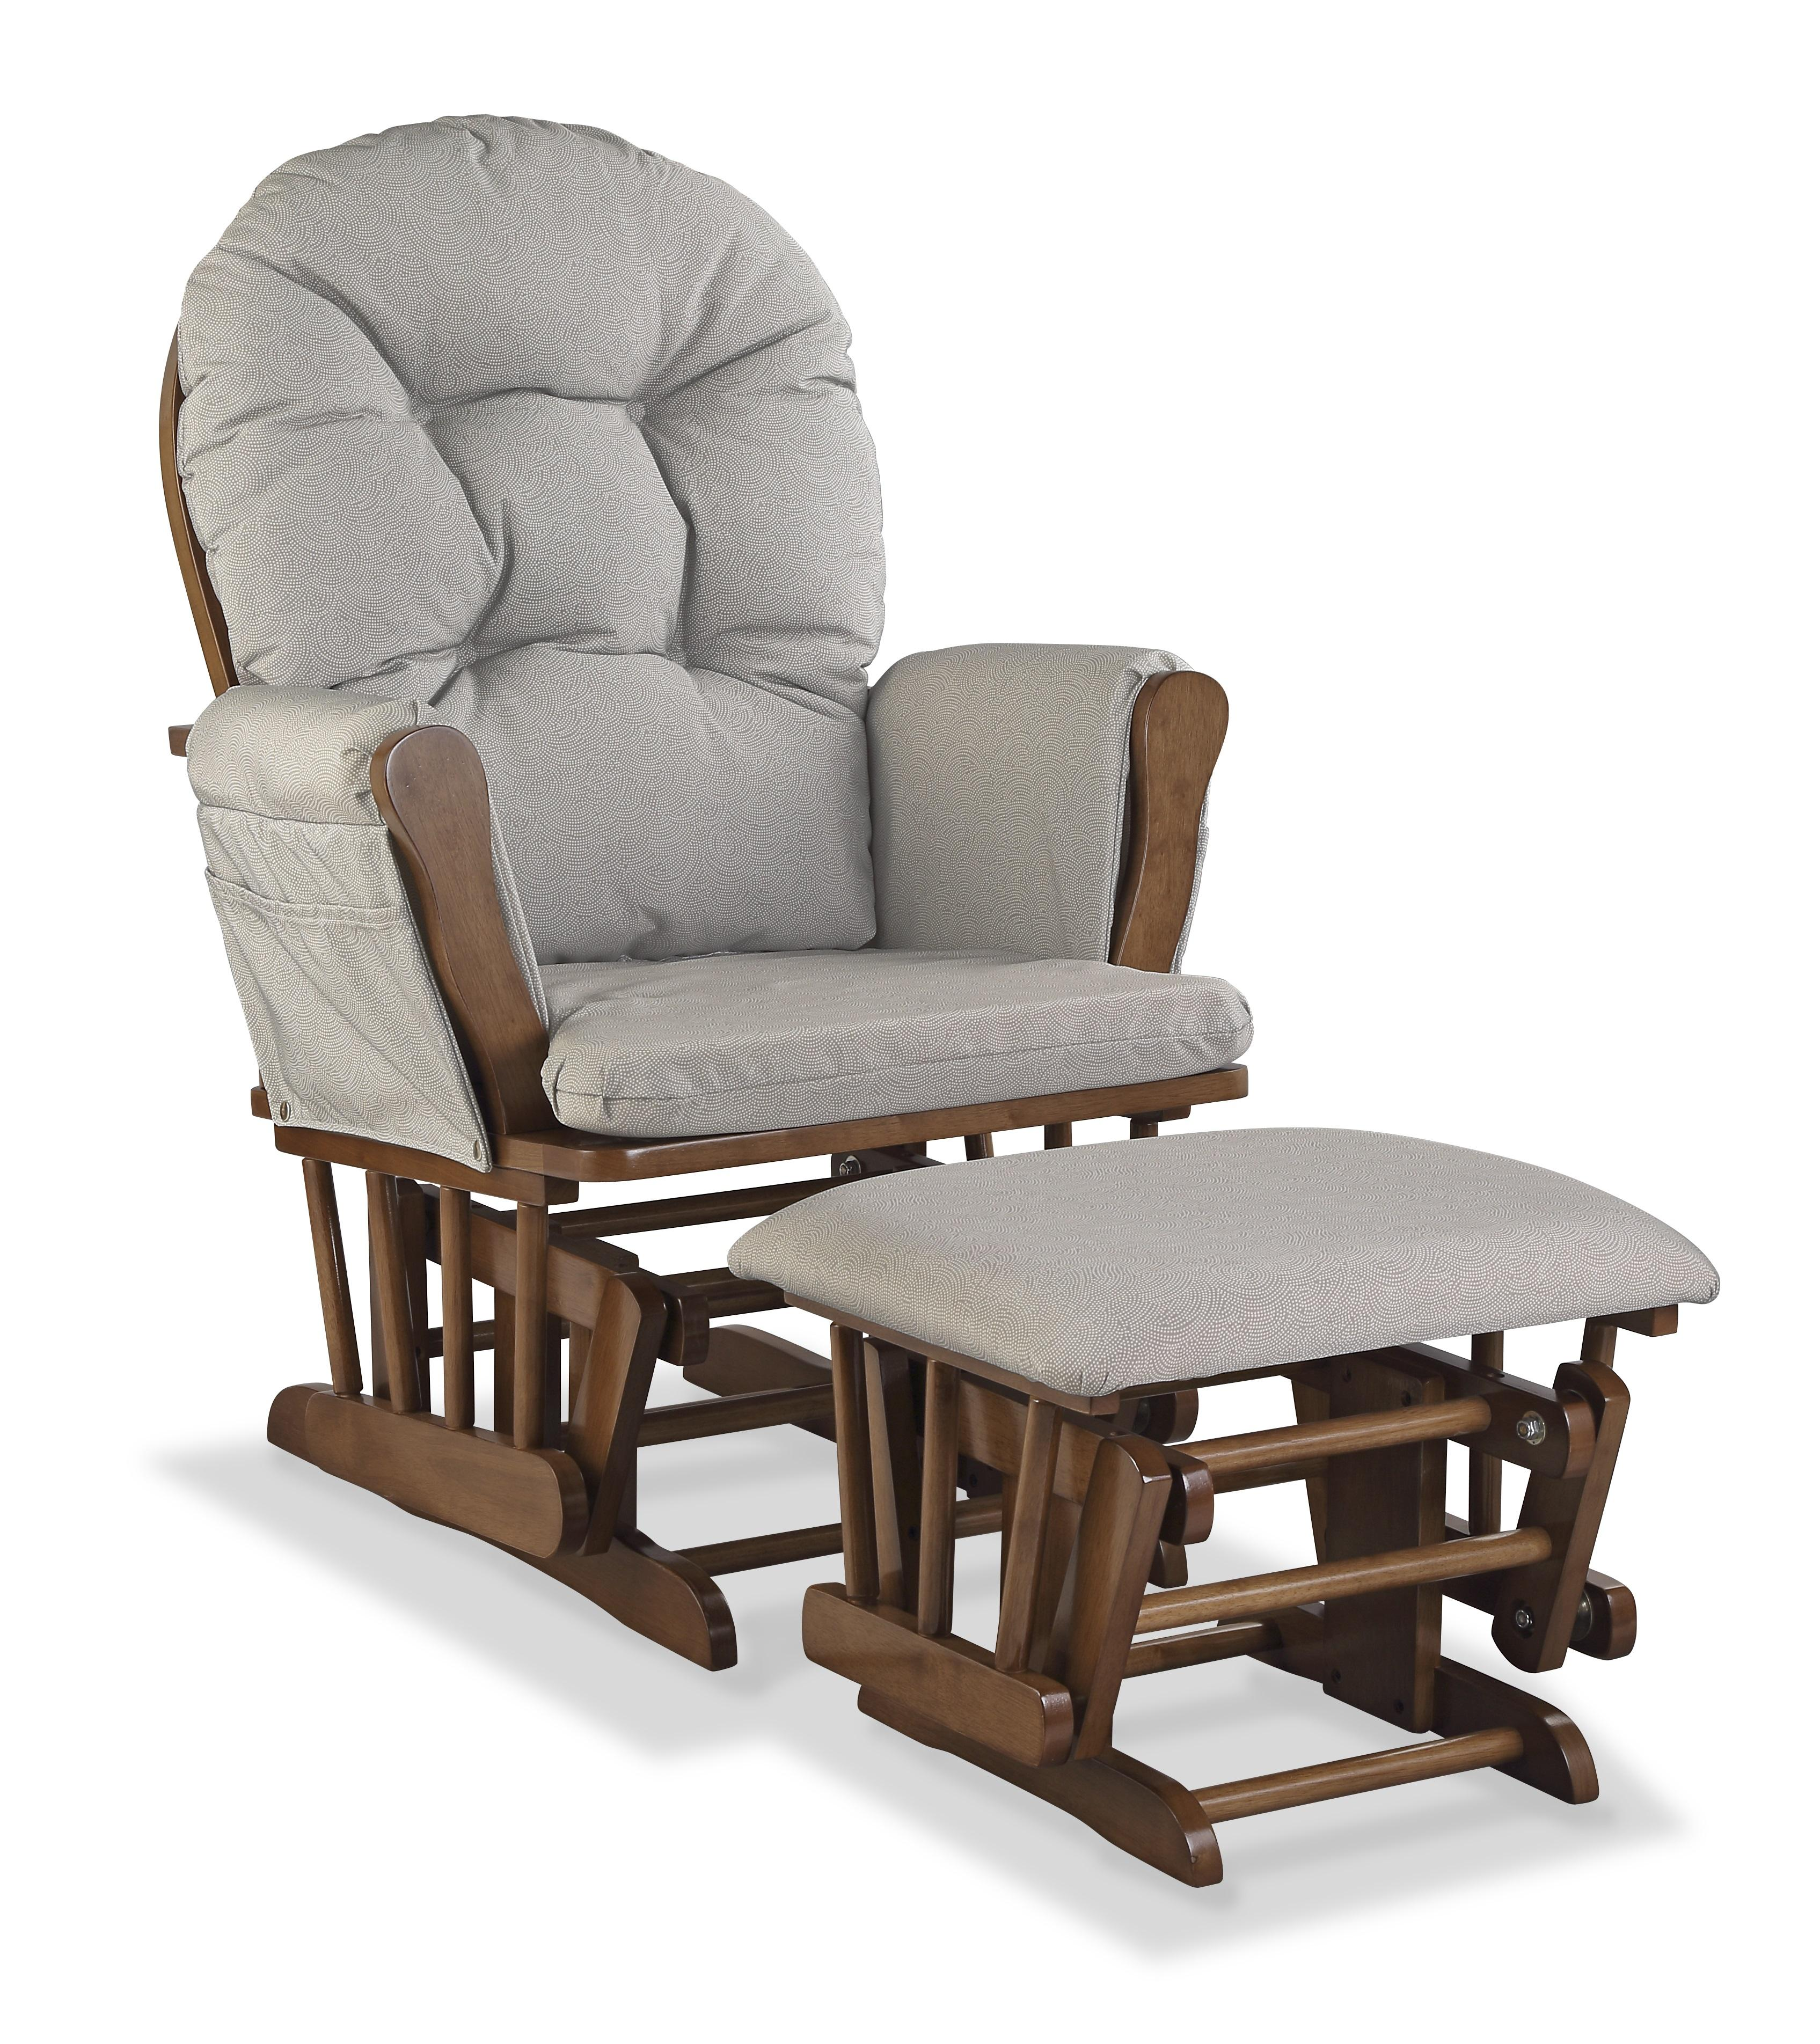 Stork Craft Custom Hoop Glider & Ottoman-Color:Taupe Swirl,Finish:Dove Brown